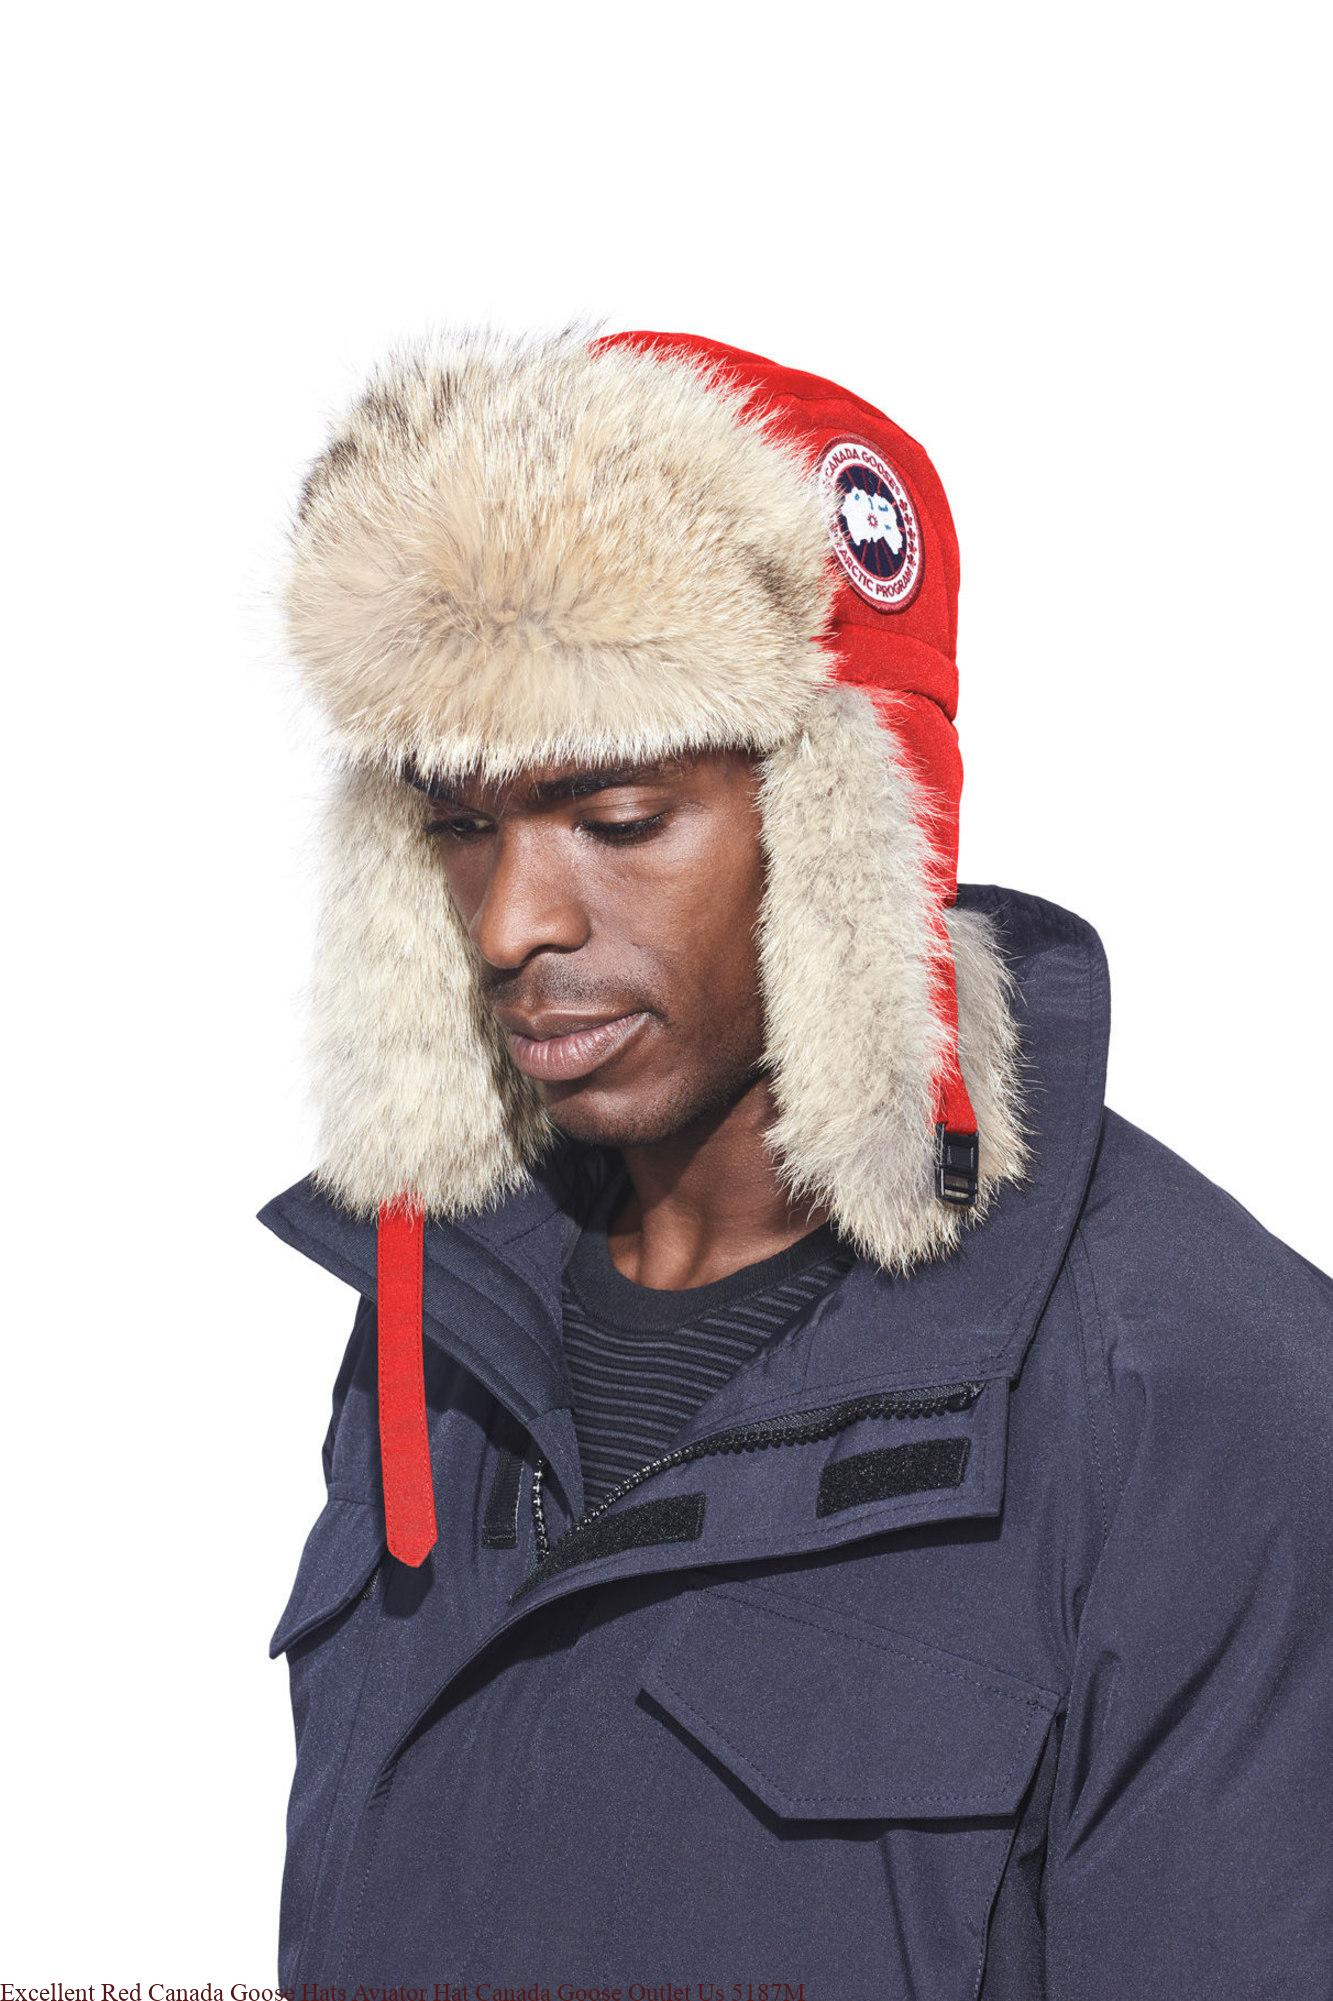 21e8174da37 Excellent Red Canada Goose Hats Aviator Hat Canada Goose Outlet Us ...